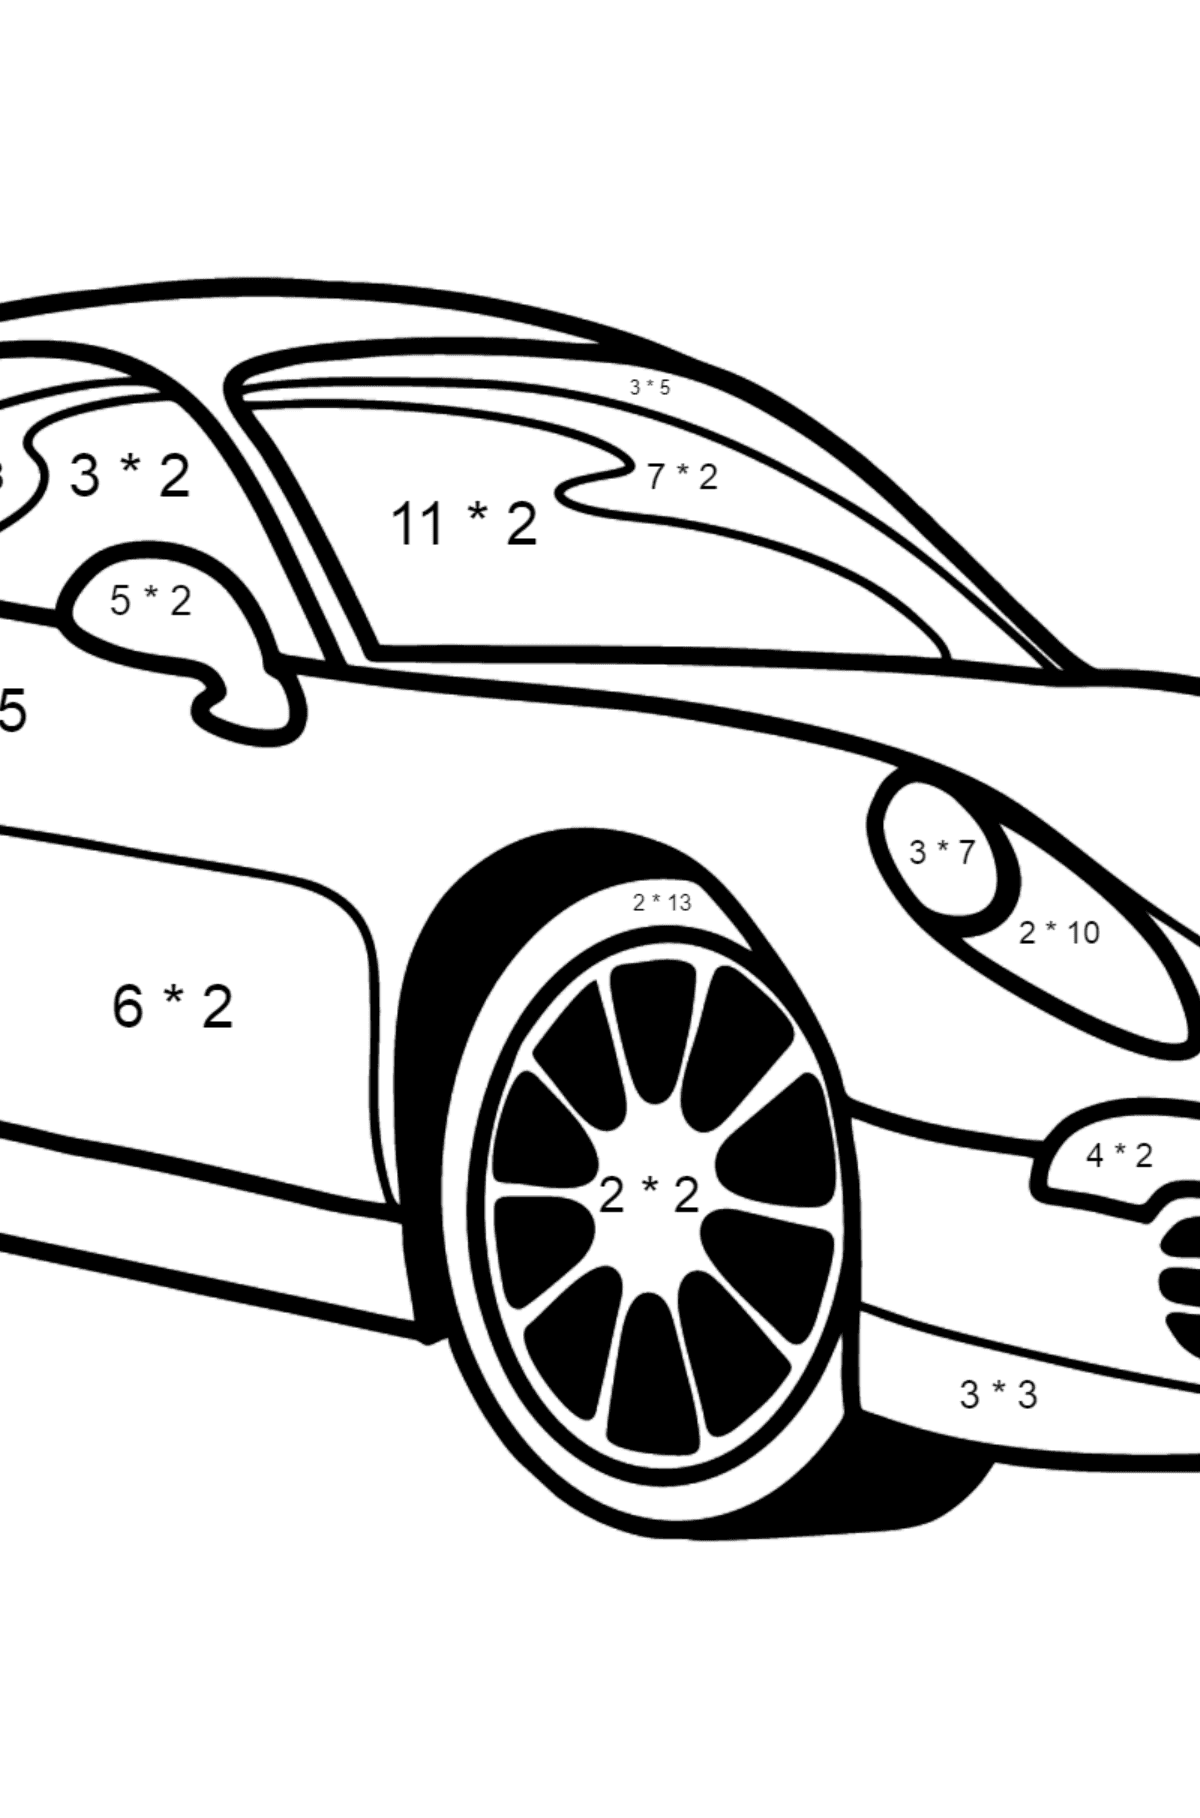 Porsche Cayman Sports Car coloring page - Math Coloring - Multiplication for Kids